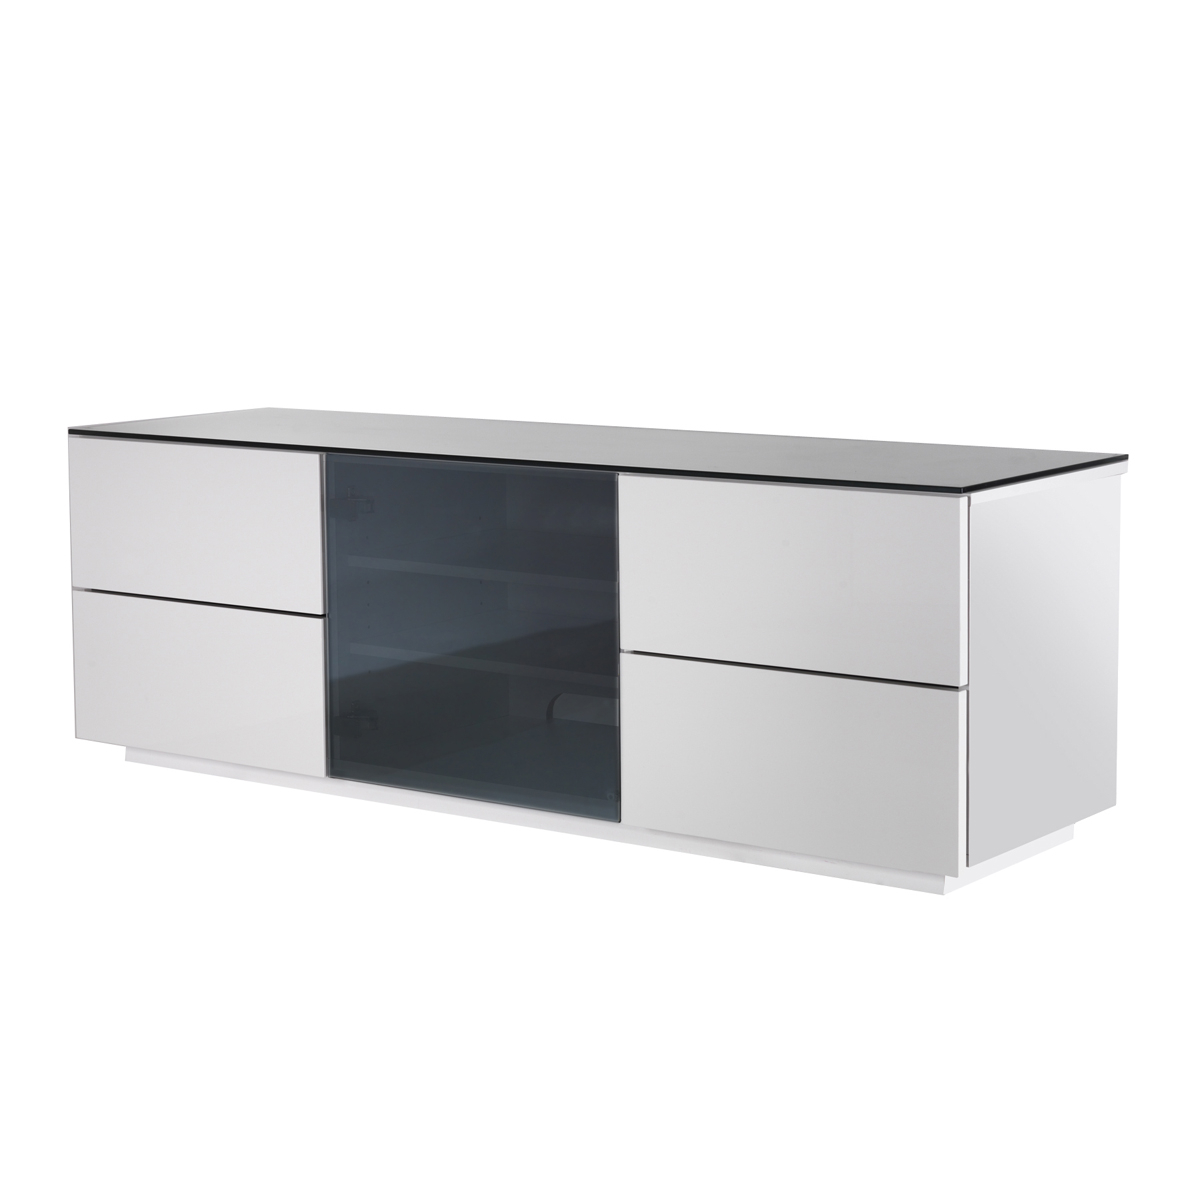 Most Recently Released Cream High Gloss Tv Cabinets Regarding Ukcf London Designer High Gloss White Tv Stand With Black Glass Door (View 15 of 20)